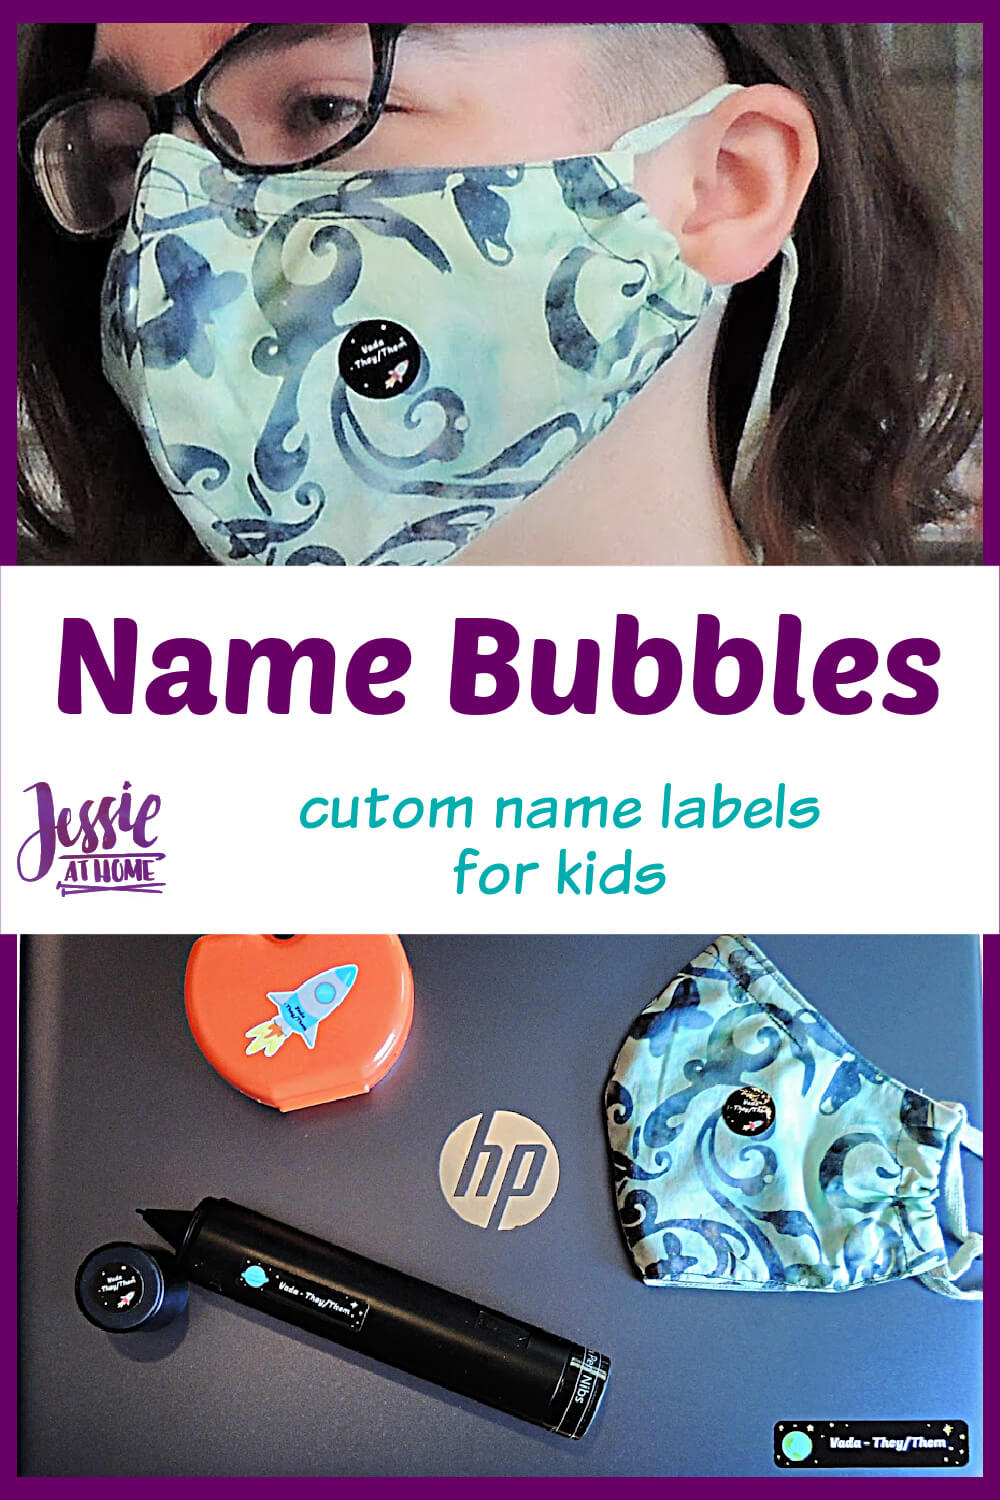 Name Bubbles - label your kids! (and their stuff)